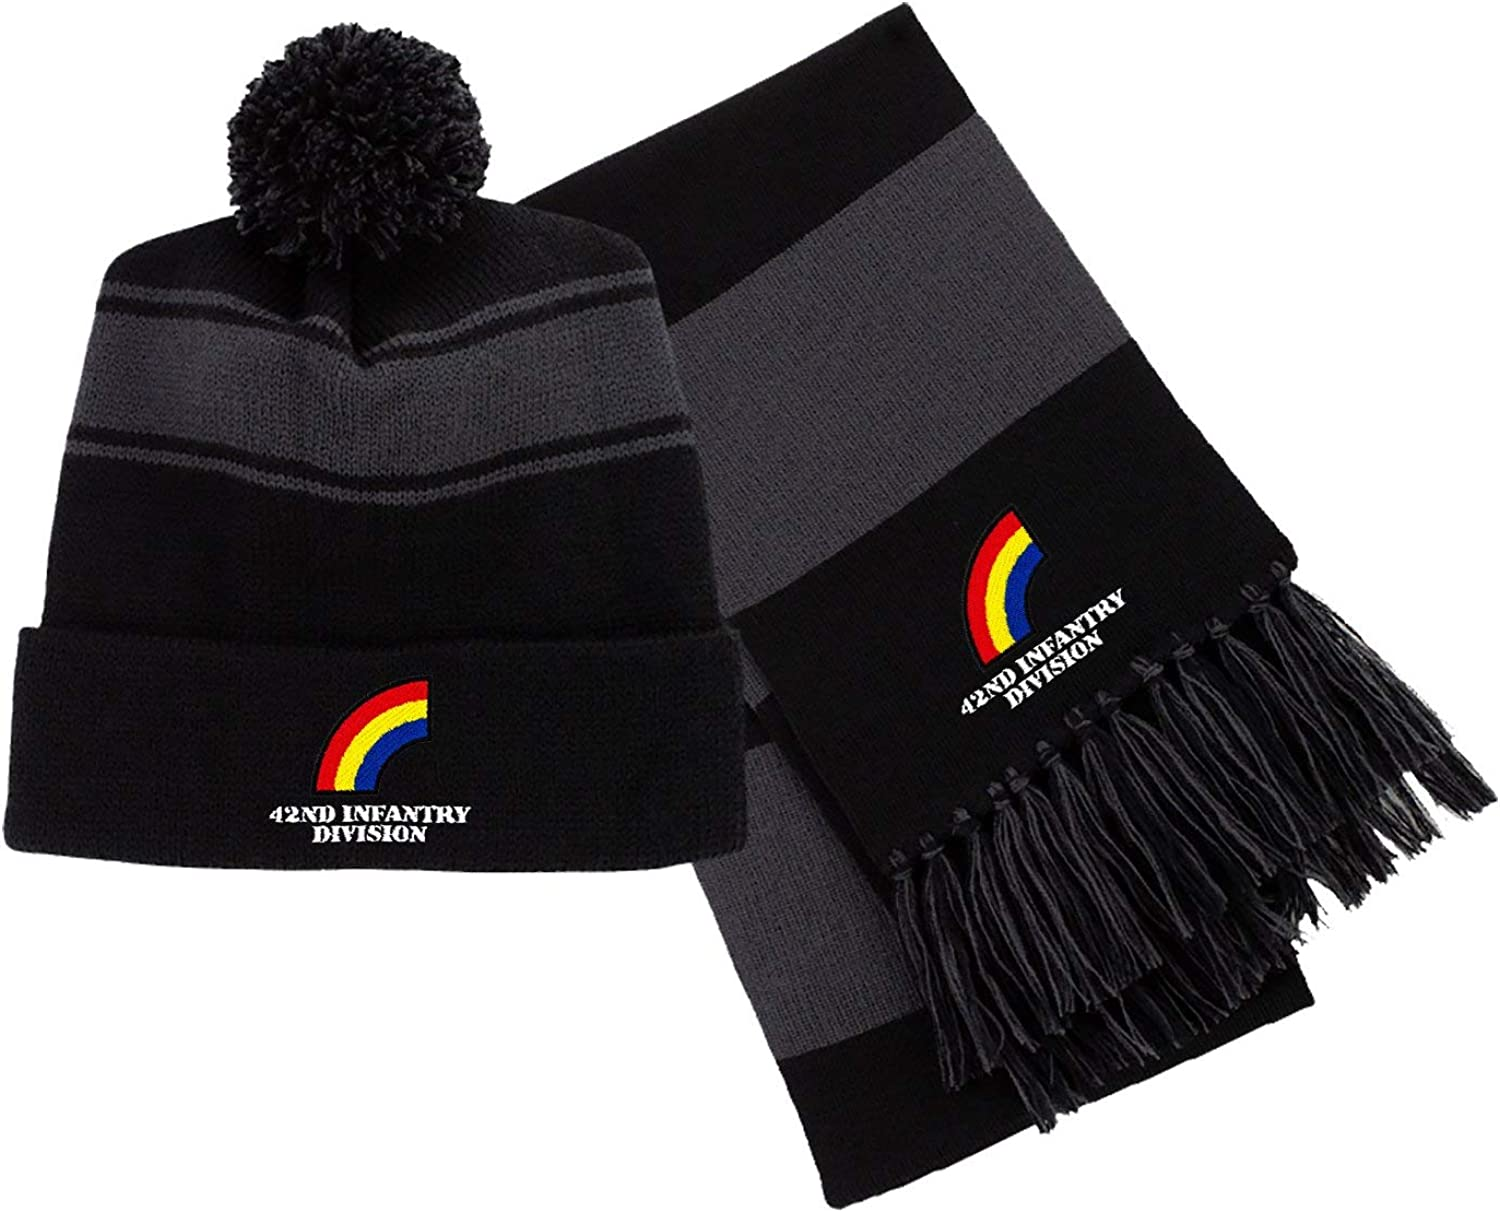 42nd Infantry Division Embroidered Beanie/Scarf